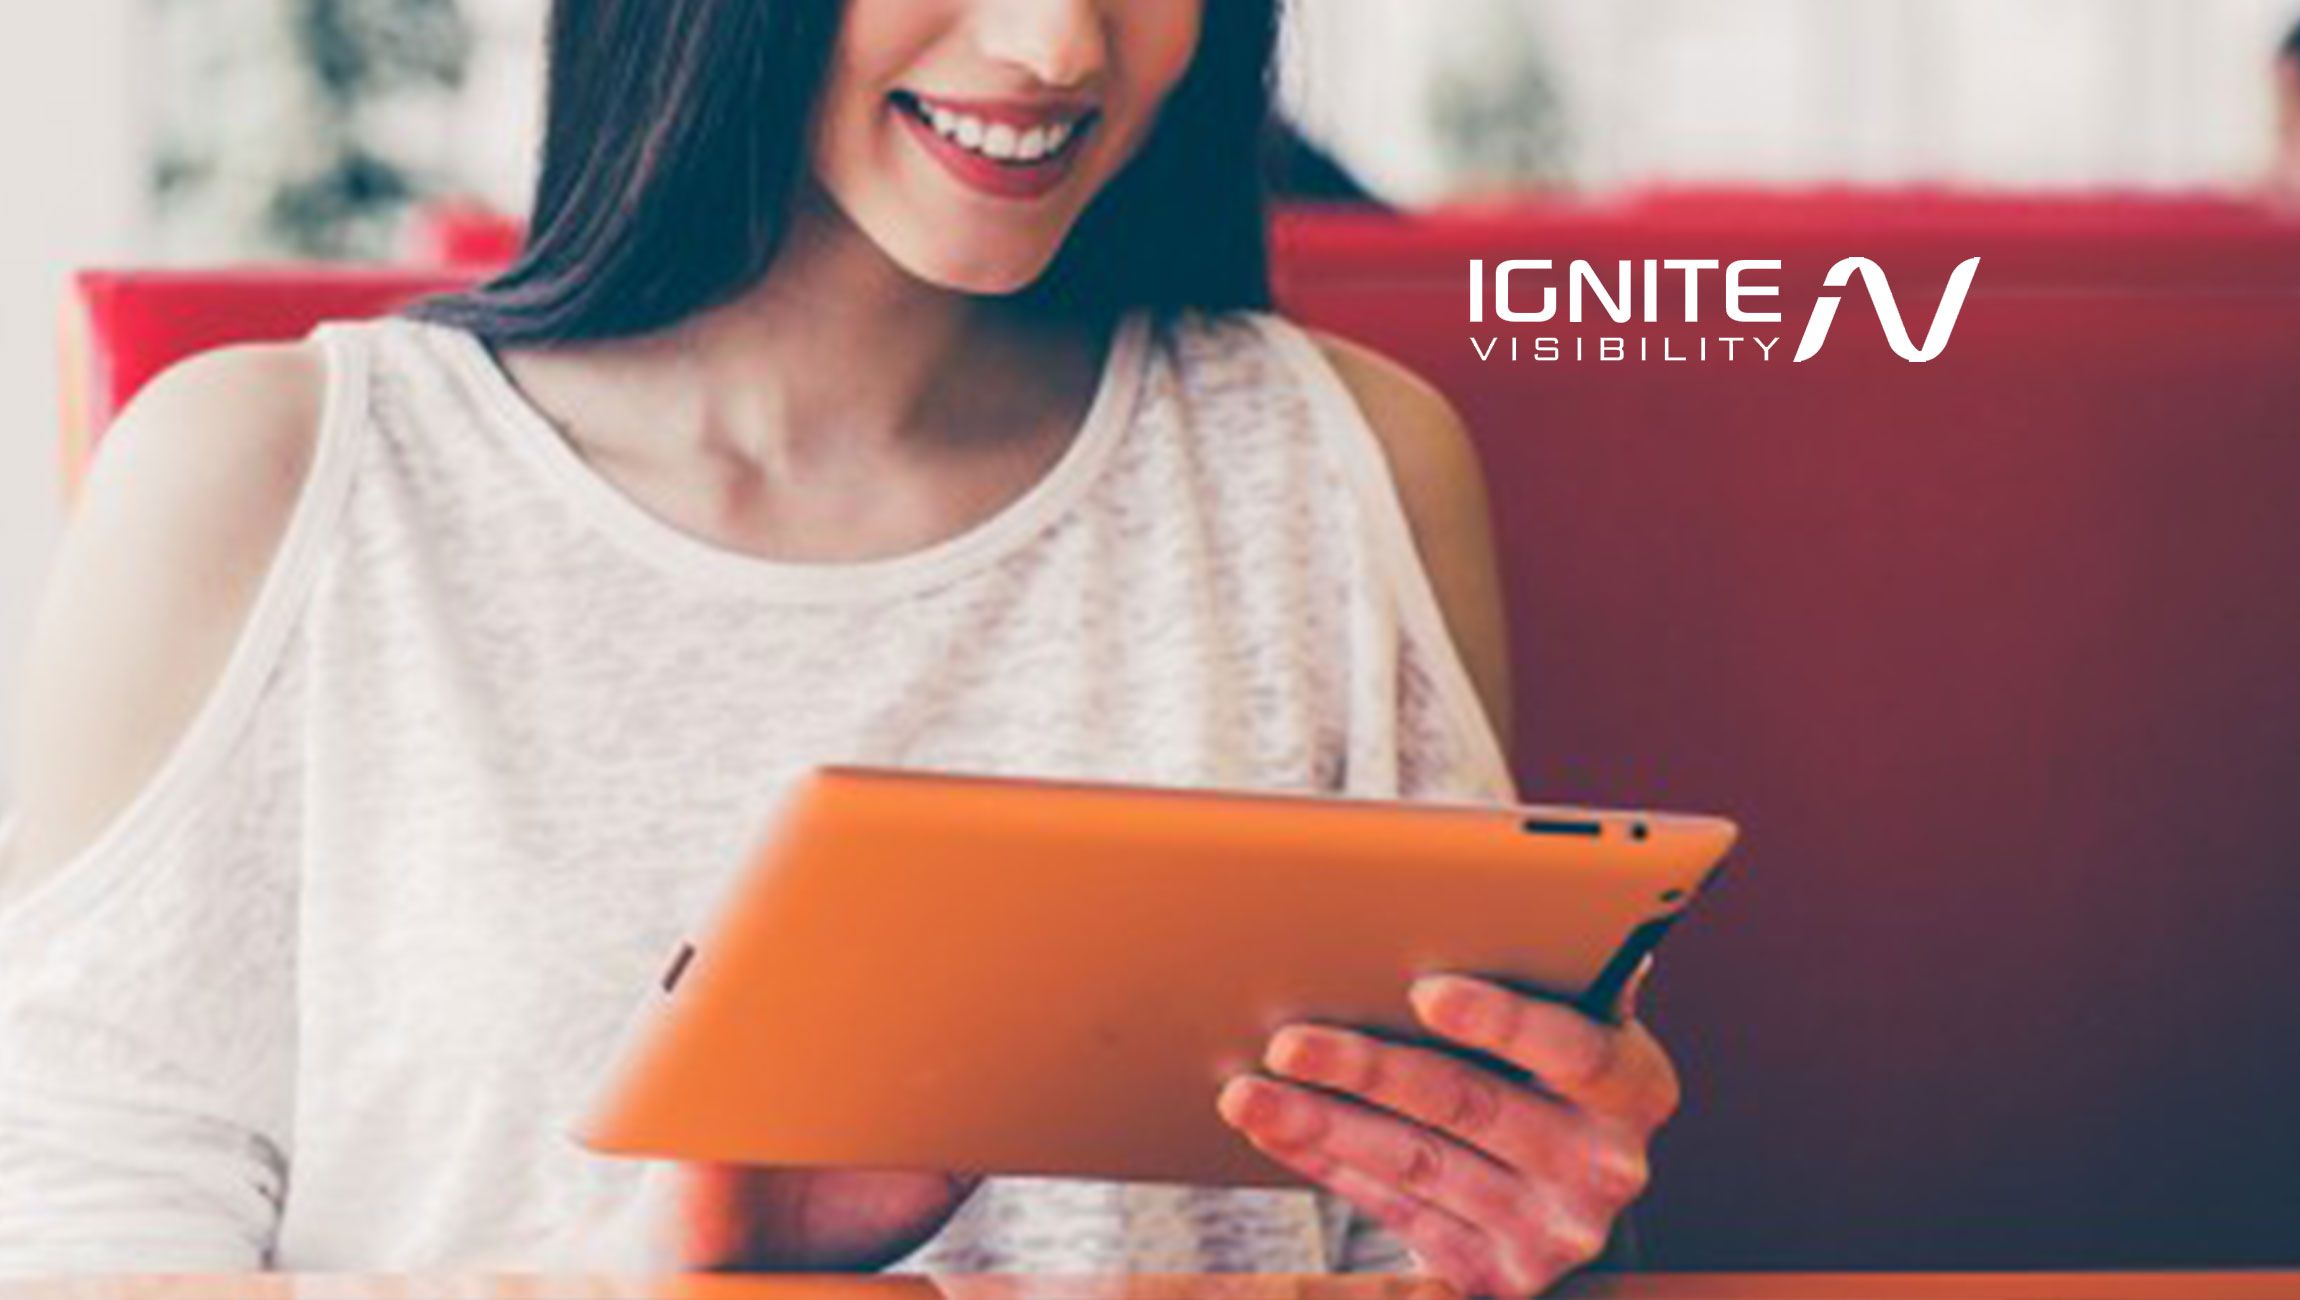 Ignite Visibility Named #1 for SEO and Search Engine Marketing Company in USA